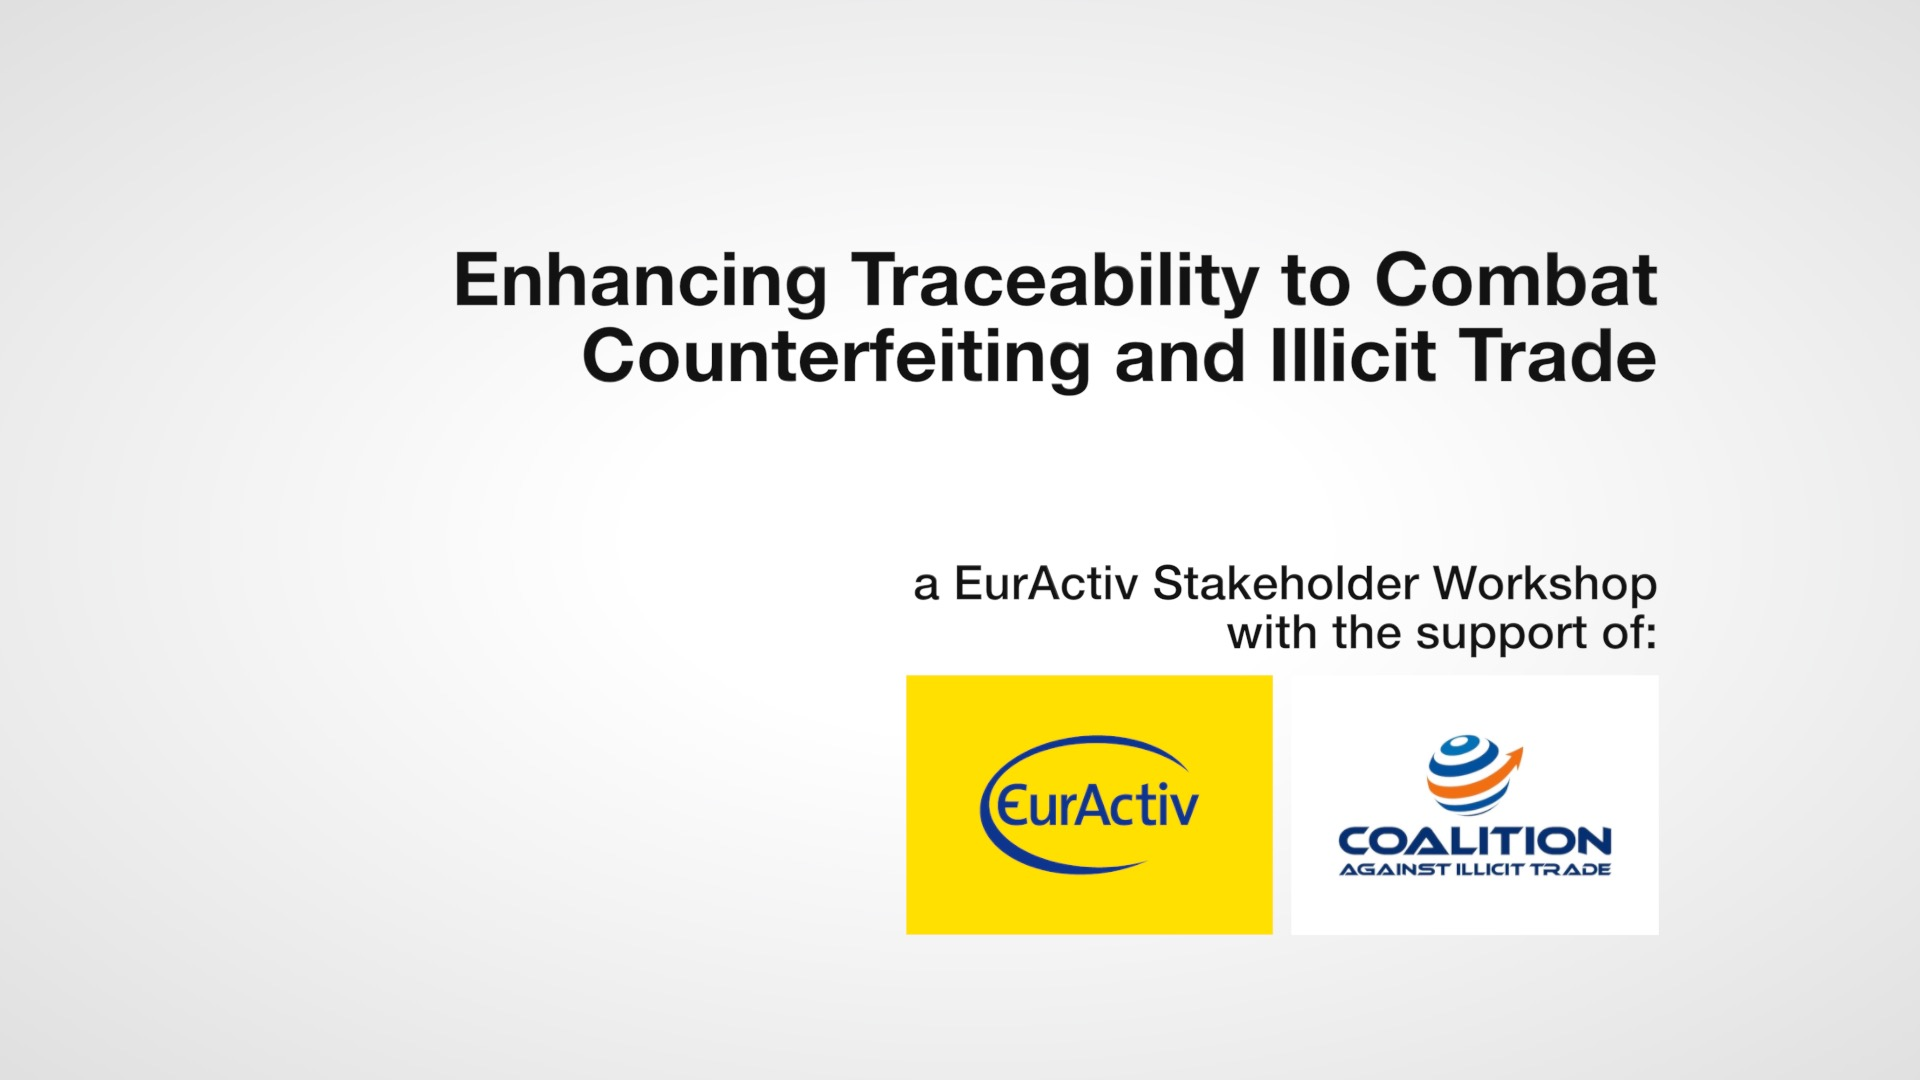 Enhancing Traceability to Combat Counterfeiting and Illicit Trade